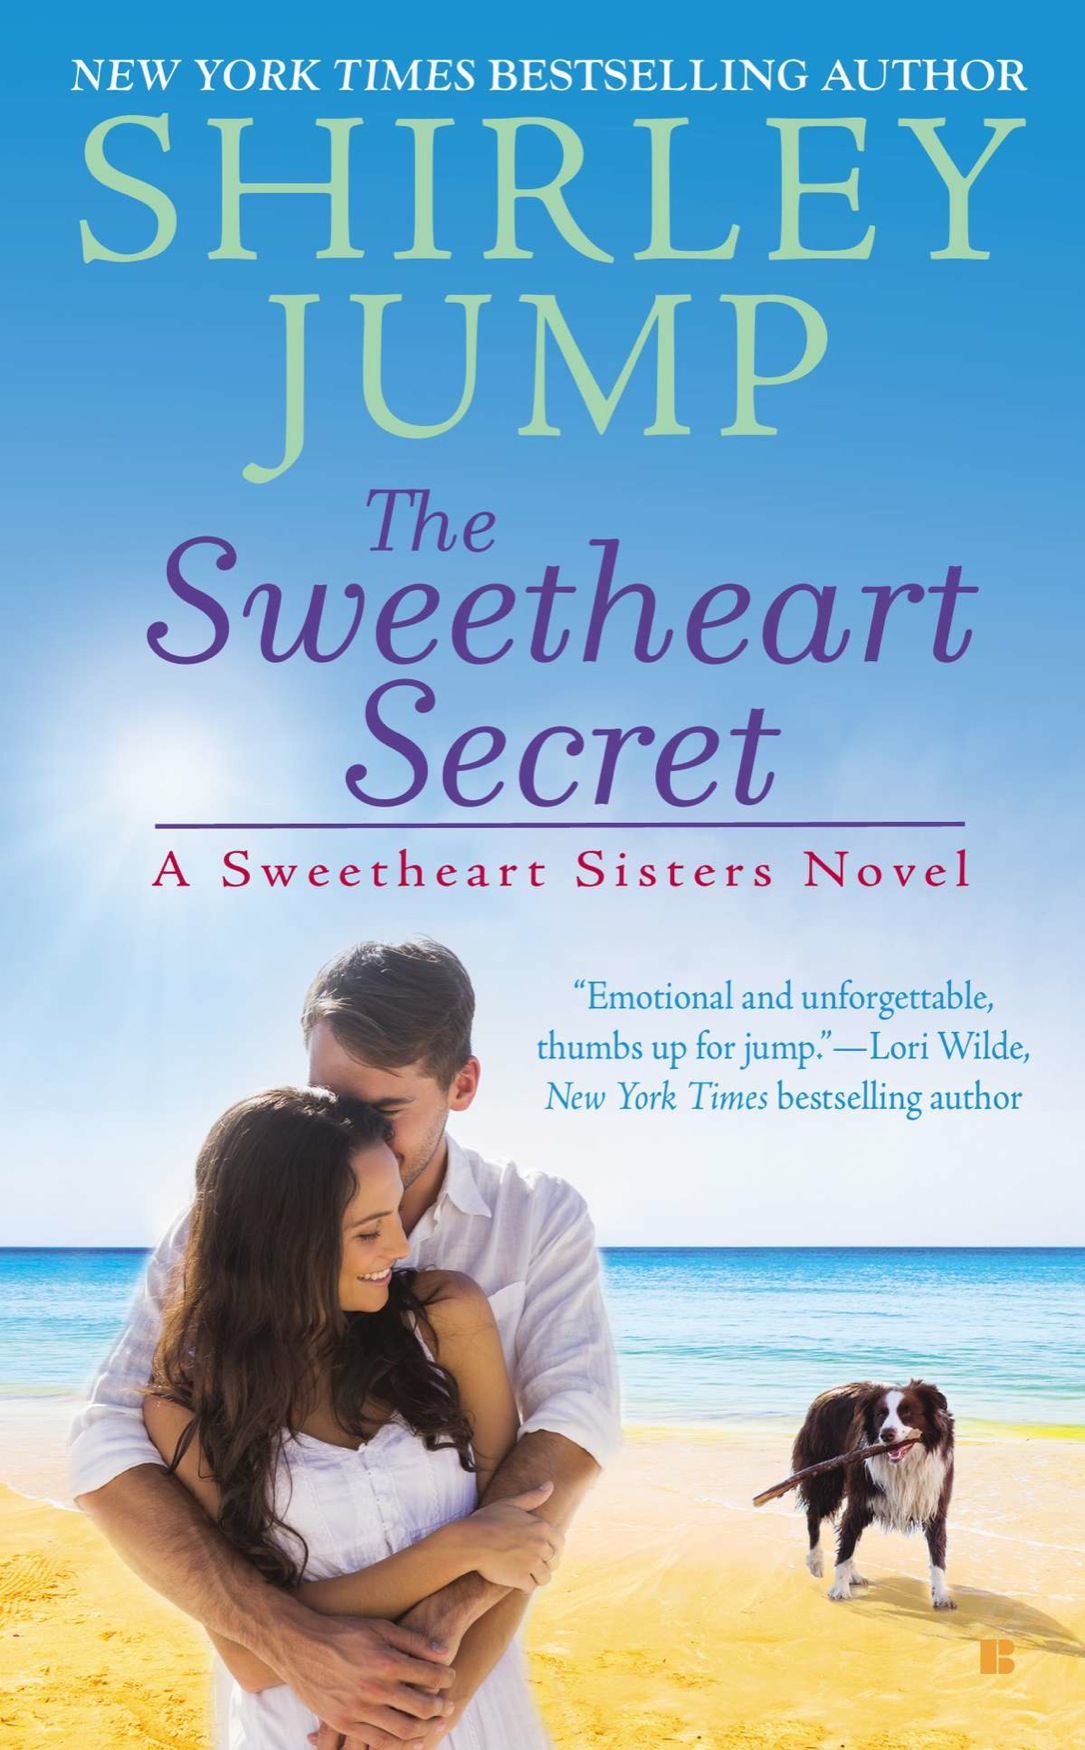 Read The Sweetheart Secret by Shirley Jump online free full